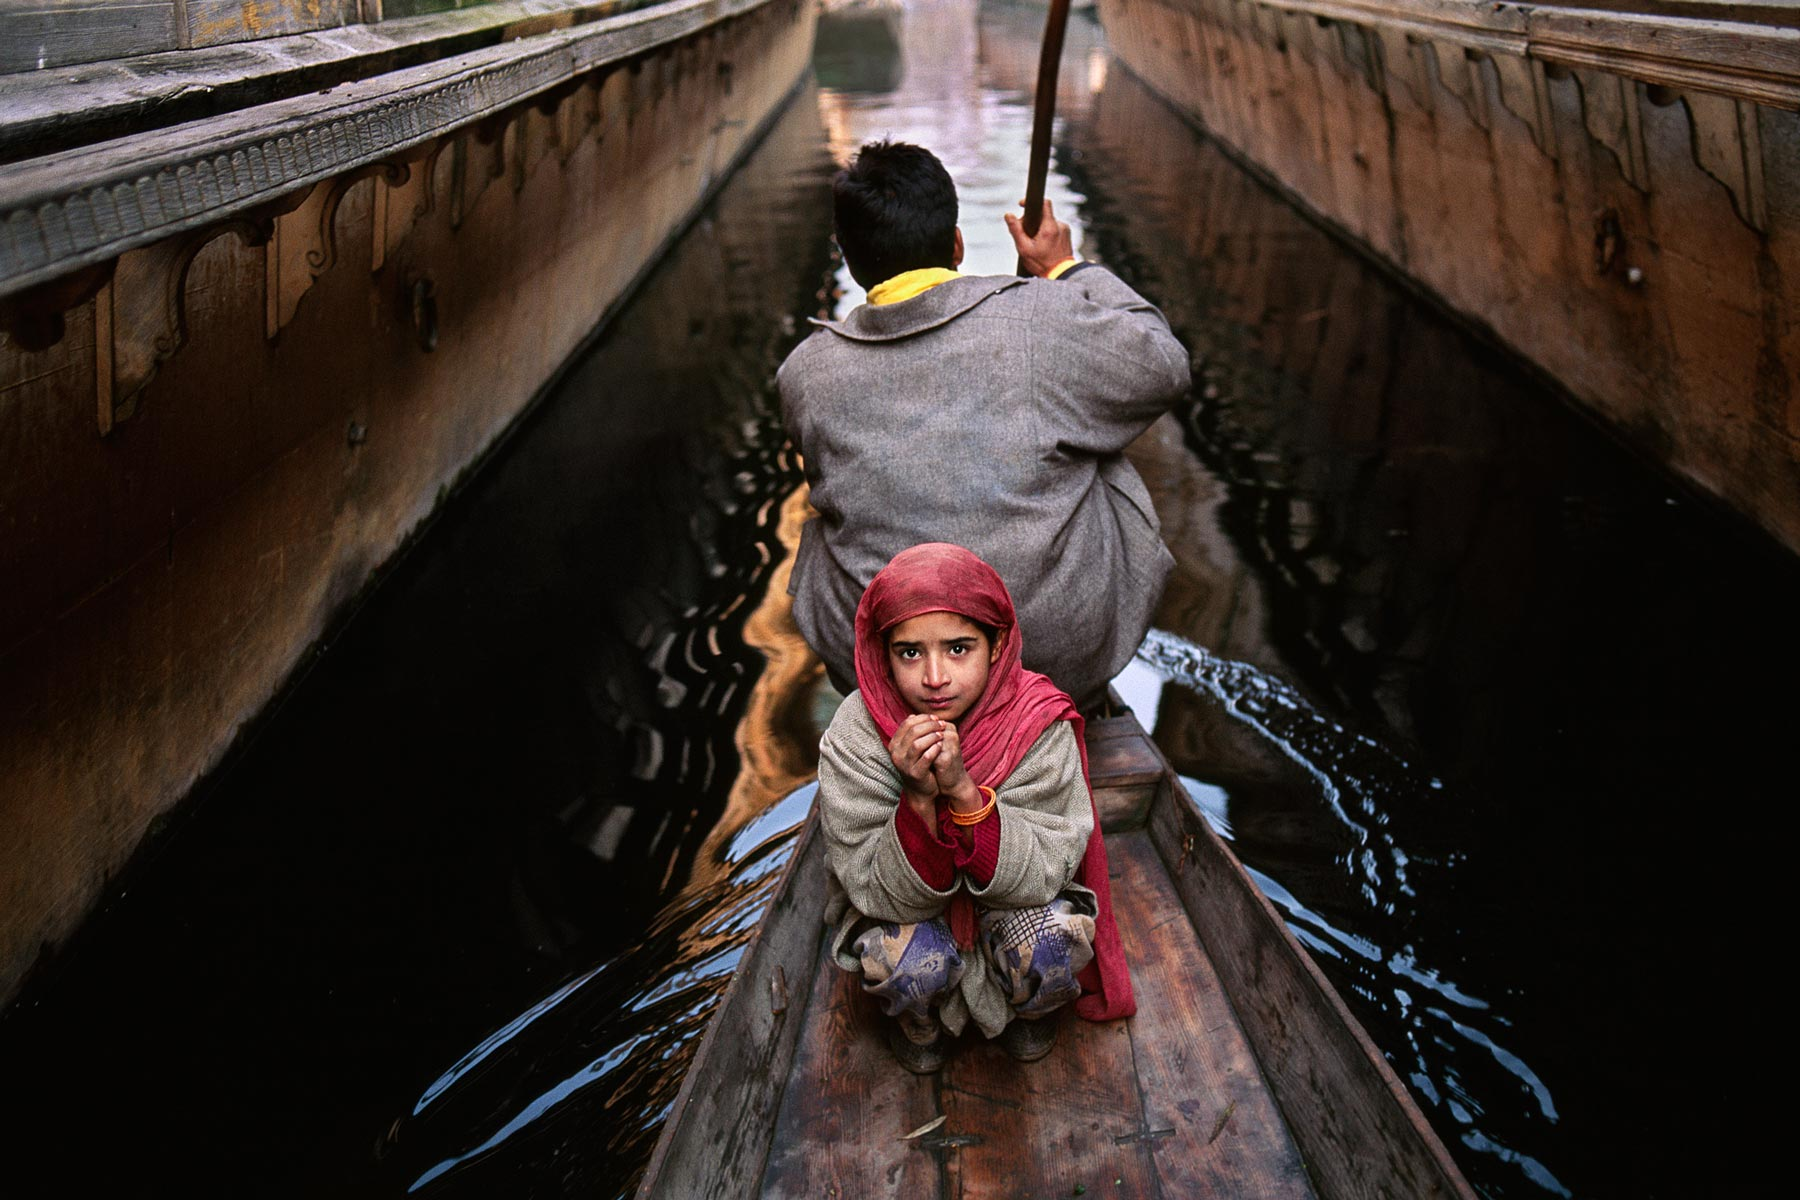 KASHMIR-10015, 1996, final print_milan A girl and her father go to the floating vegetable market in their shikara in Srinagar. Much of the city is surrounded by Dal Lake, where thousands of people use these canoe-like boats to go to and from their homes. Srinagar, Kashmir, India, 1996. Magnum Photos, NYC5946, MCS1999005 K200.